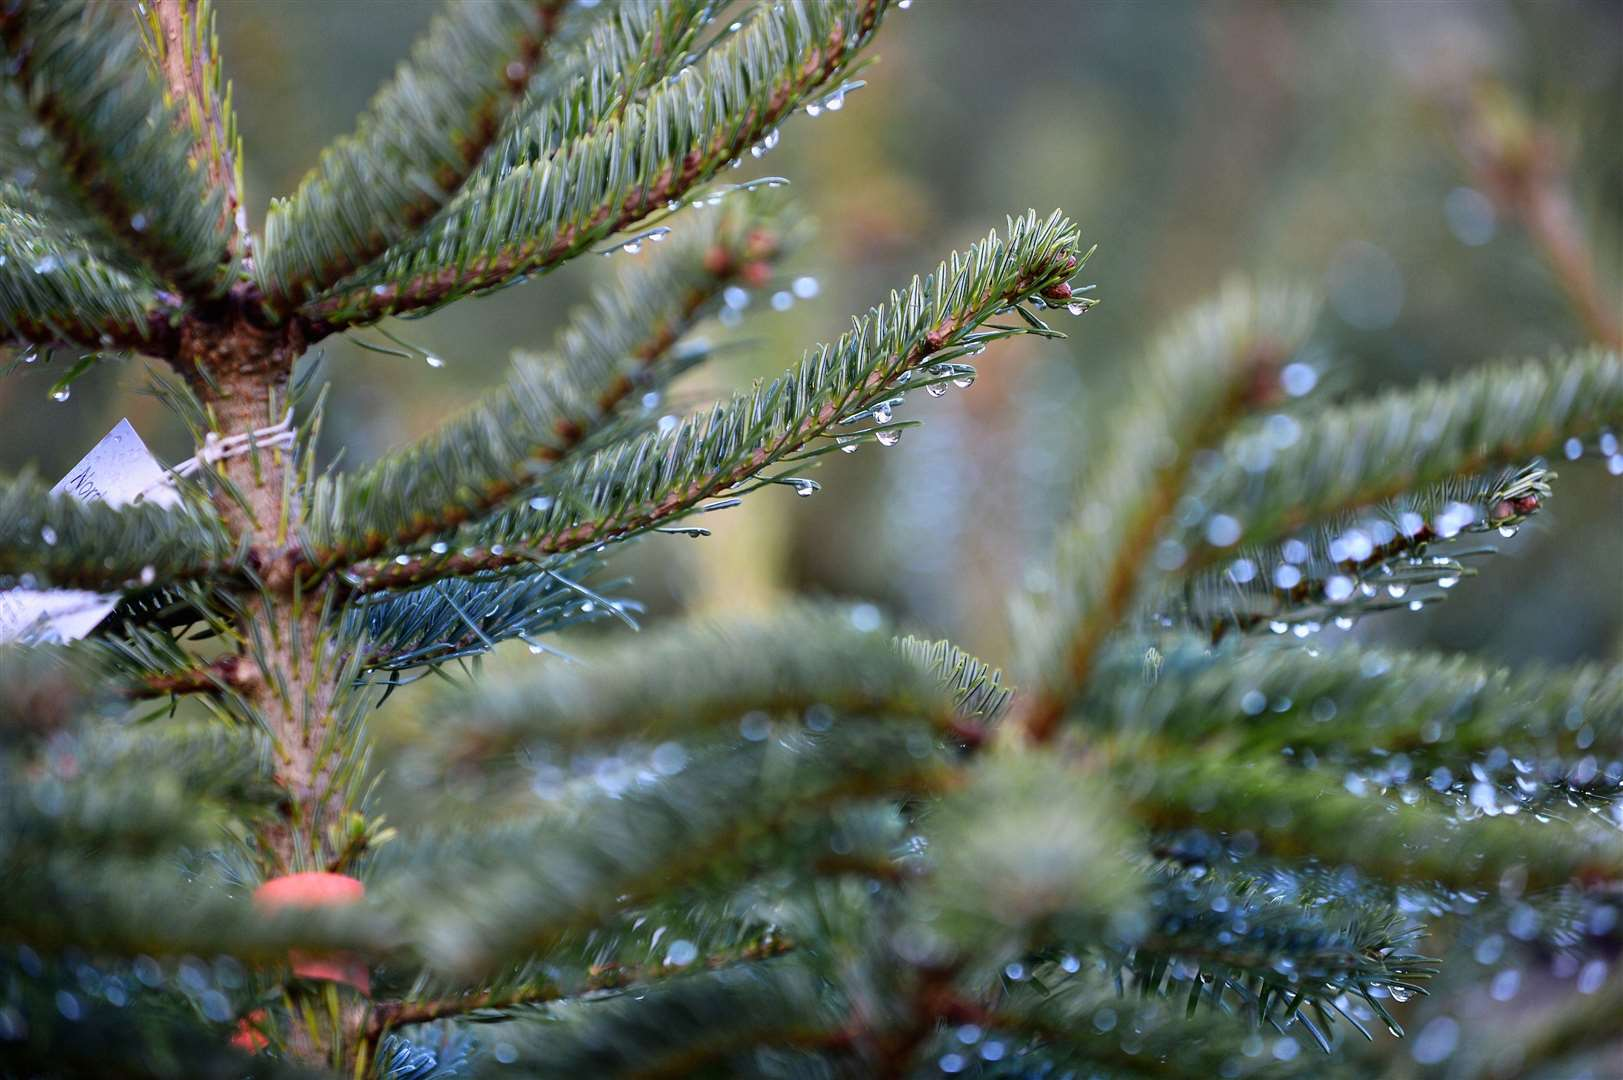 Notcutts in Maidstone and Tunbridge Wells share advice on how to take care of a real Christmas tree